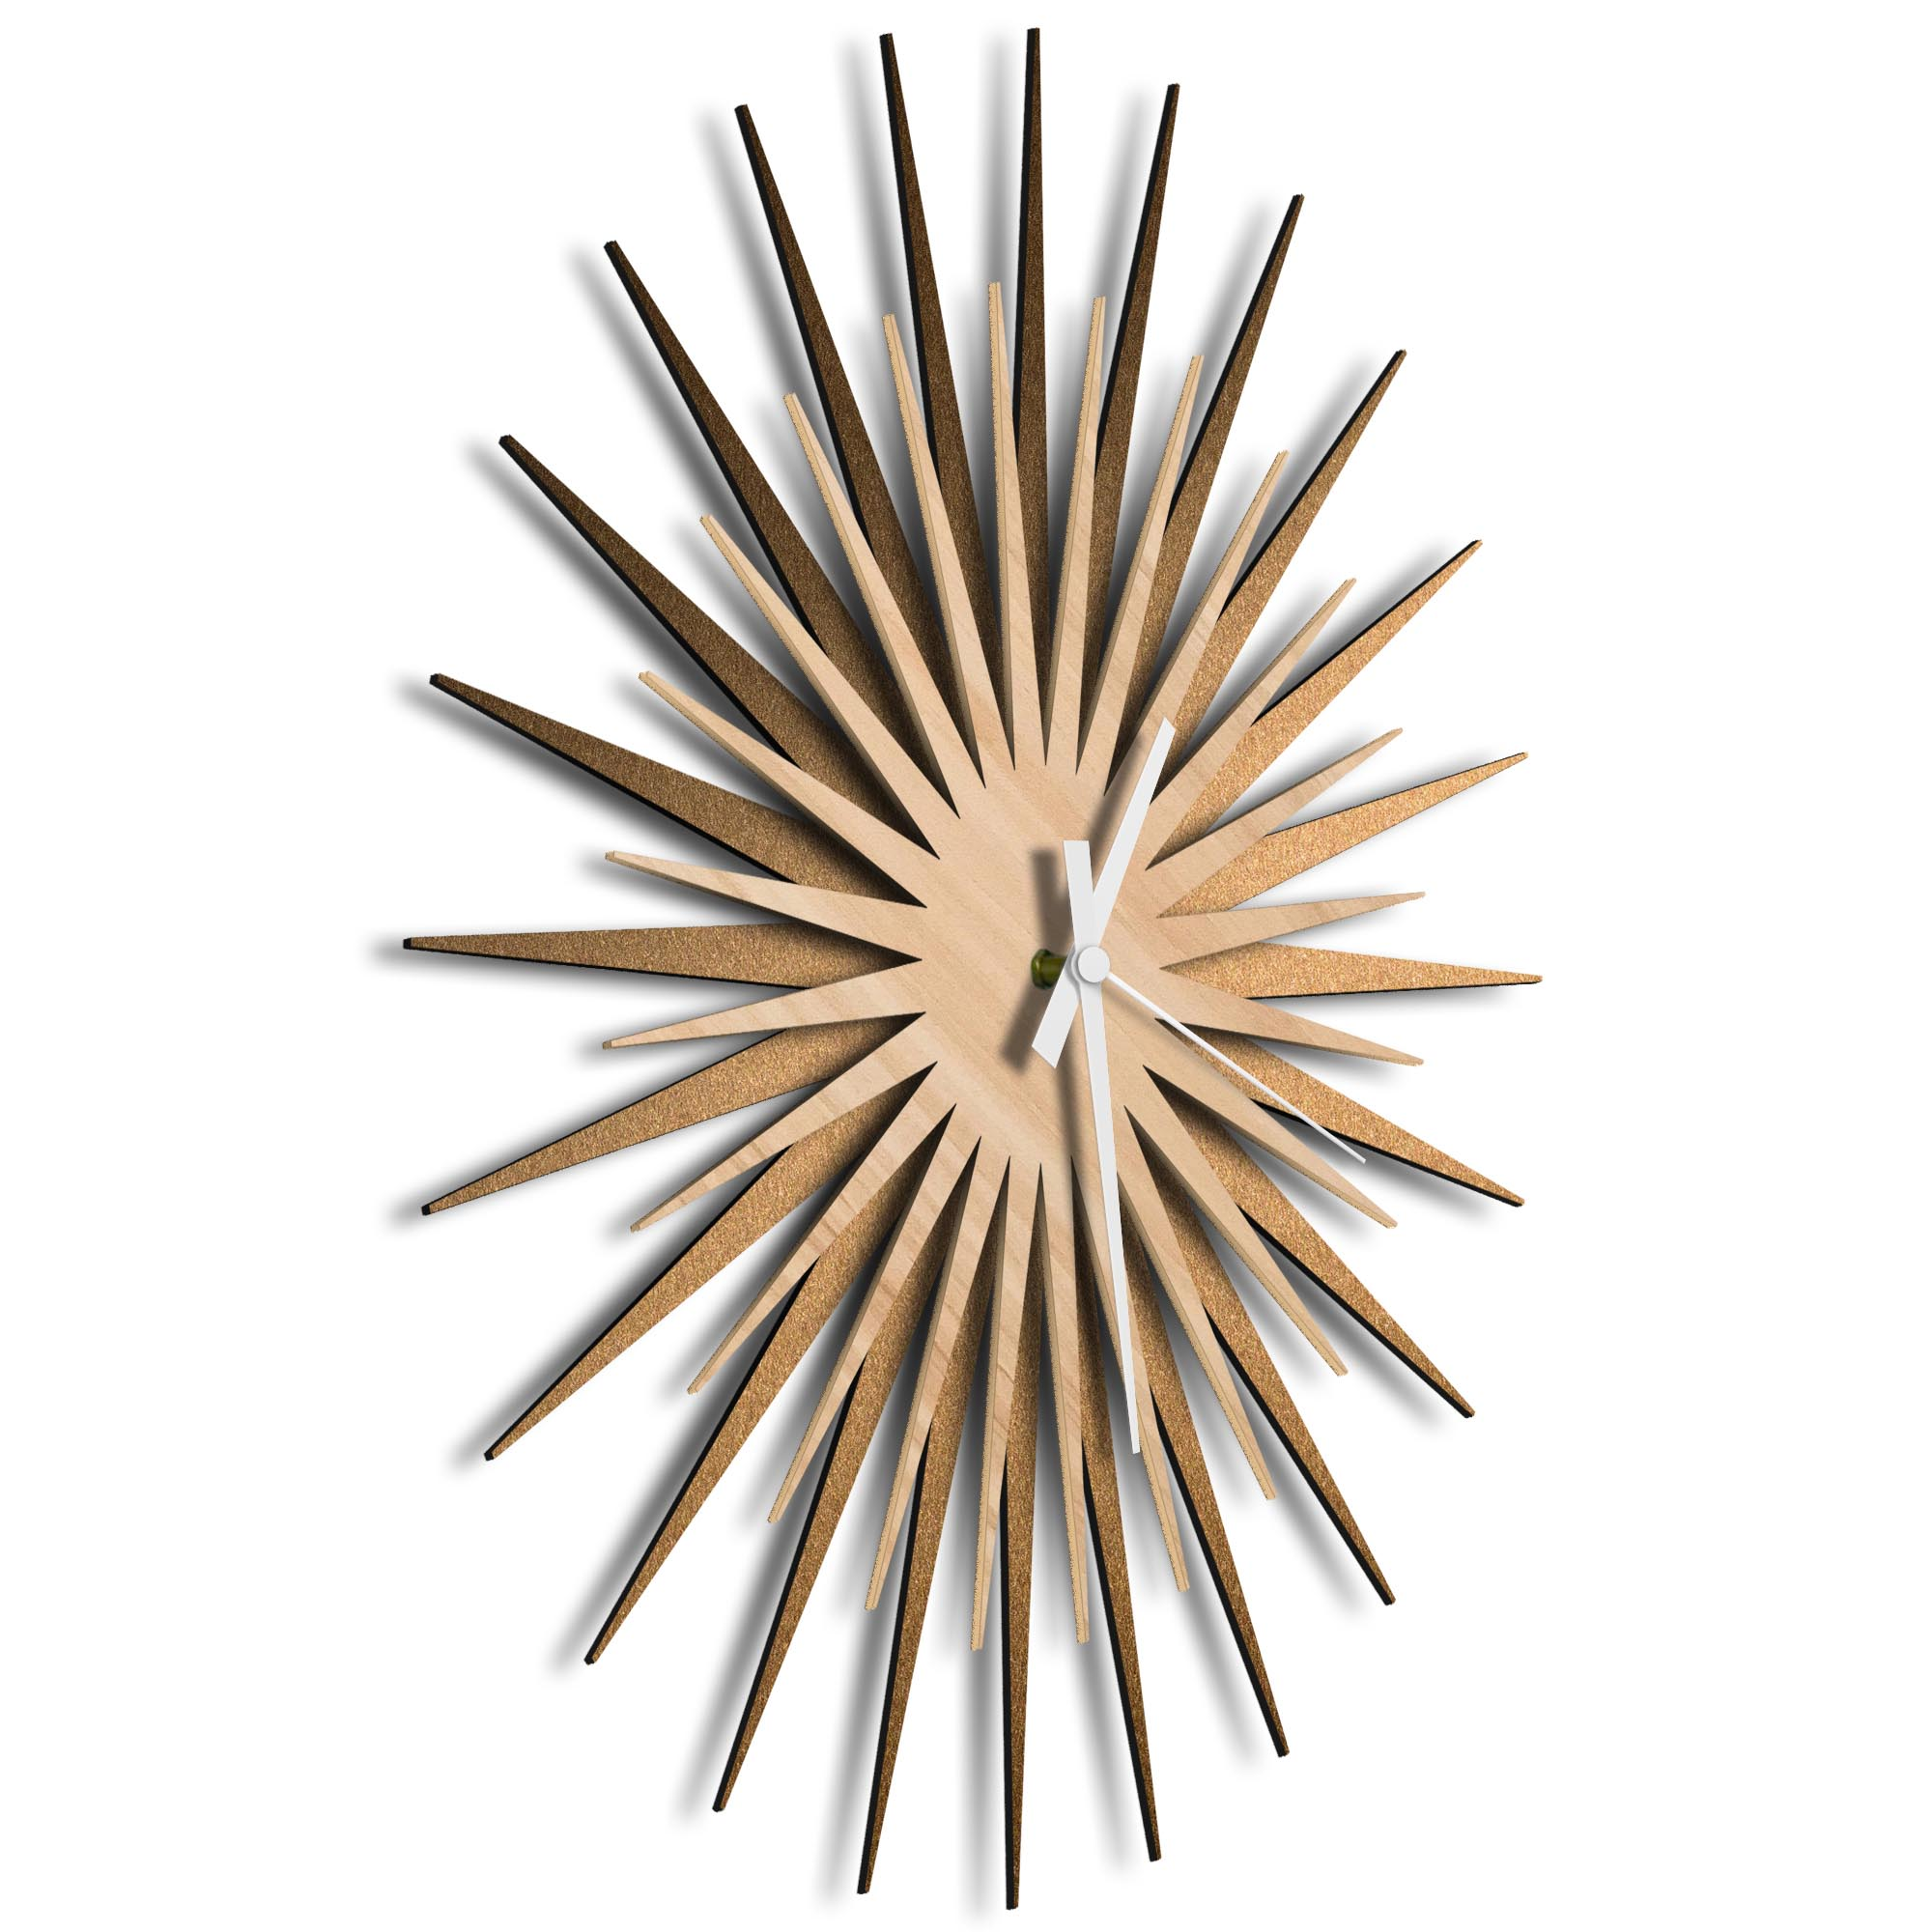 Atomic Era Clock Bronze Maple White by Adam Schwoeppe - Mid-Century Modern Clock on Brushed Bronze Polymetal - Image 2